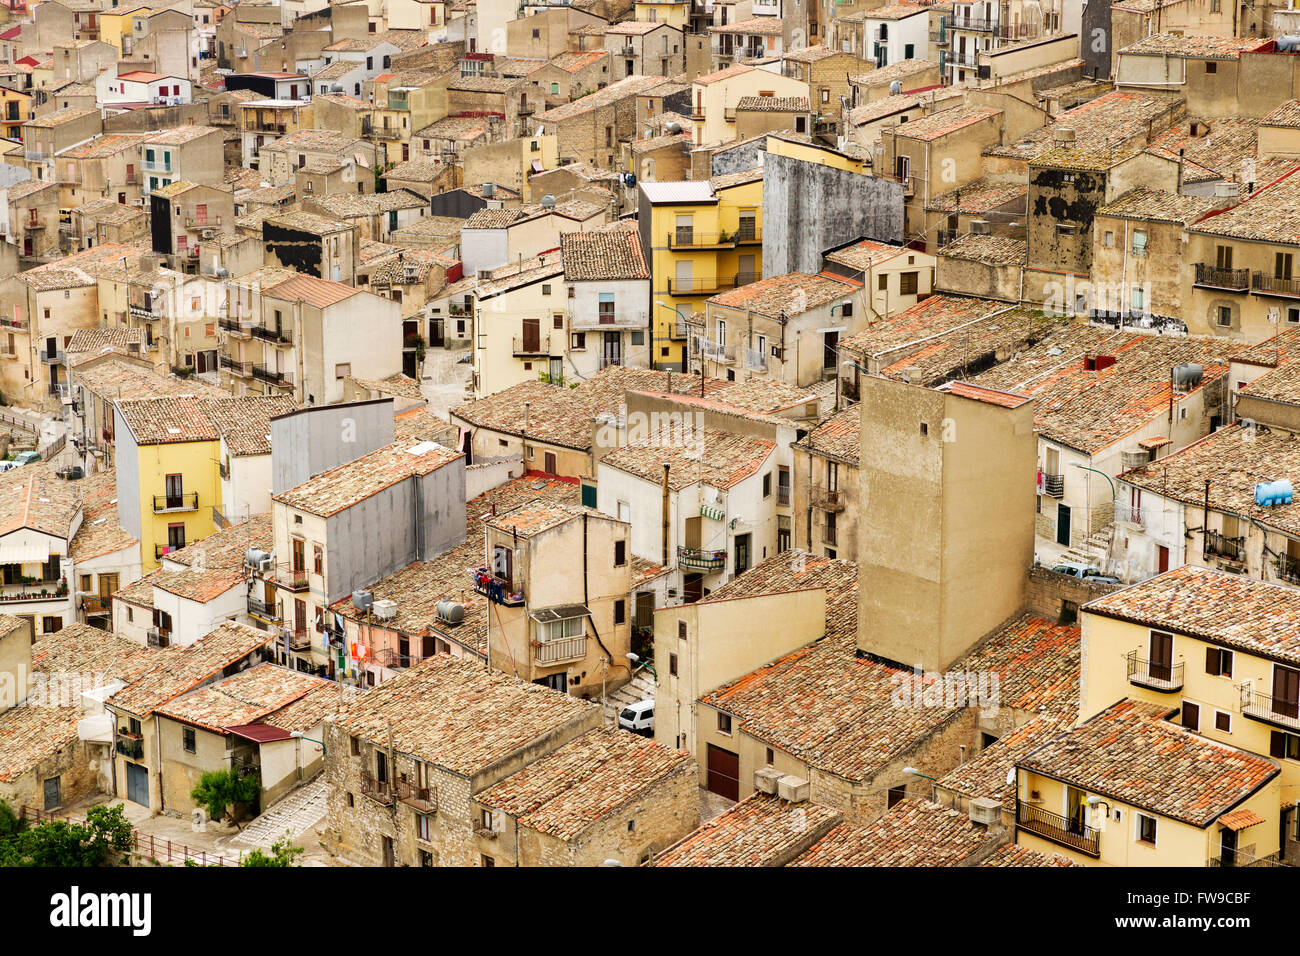 Prizzi, Province of Palermo, Sicily, Italy - Stock Image